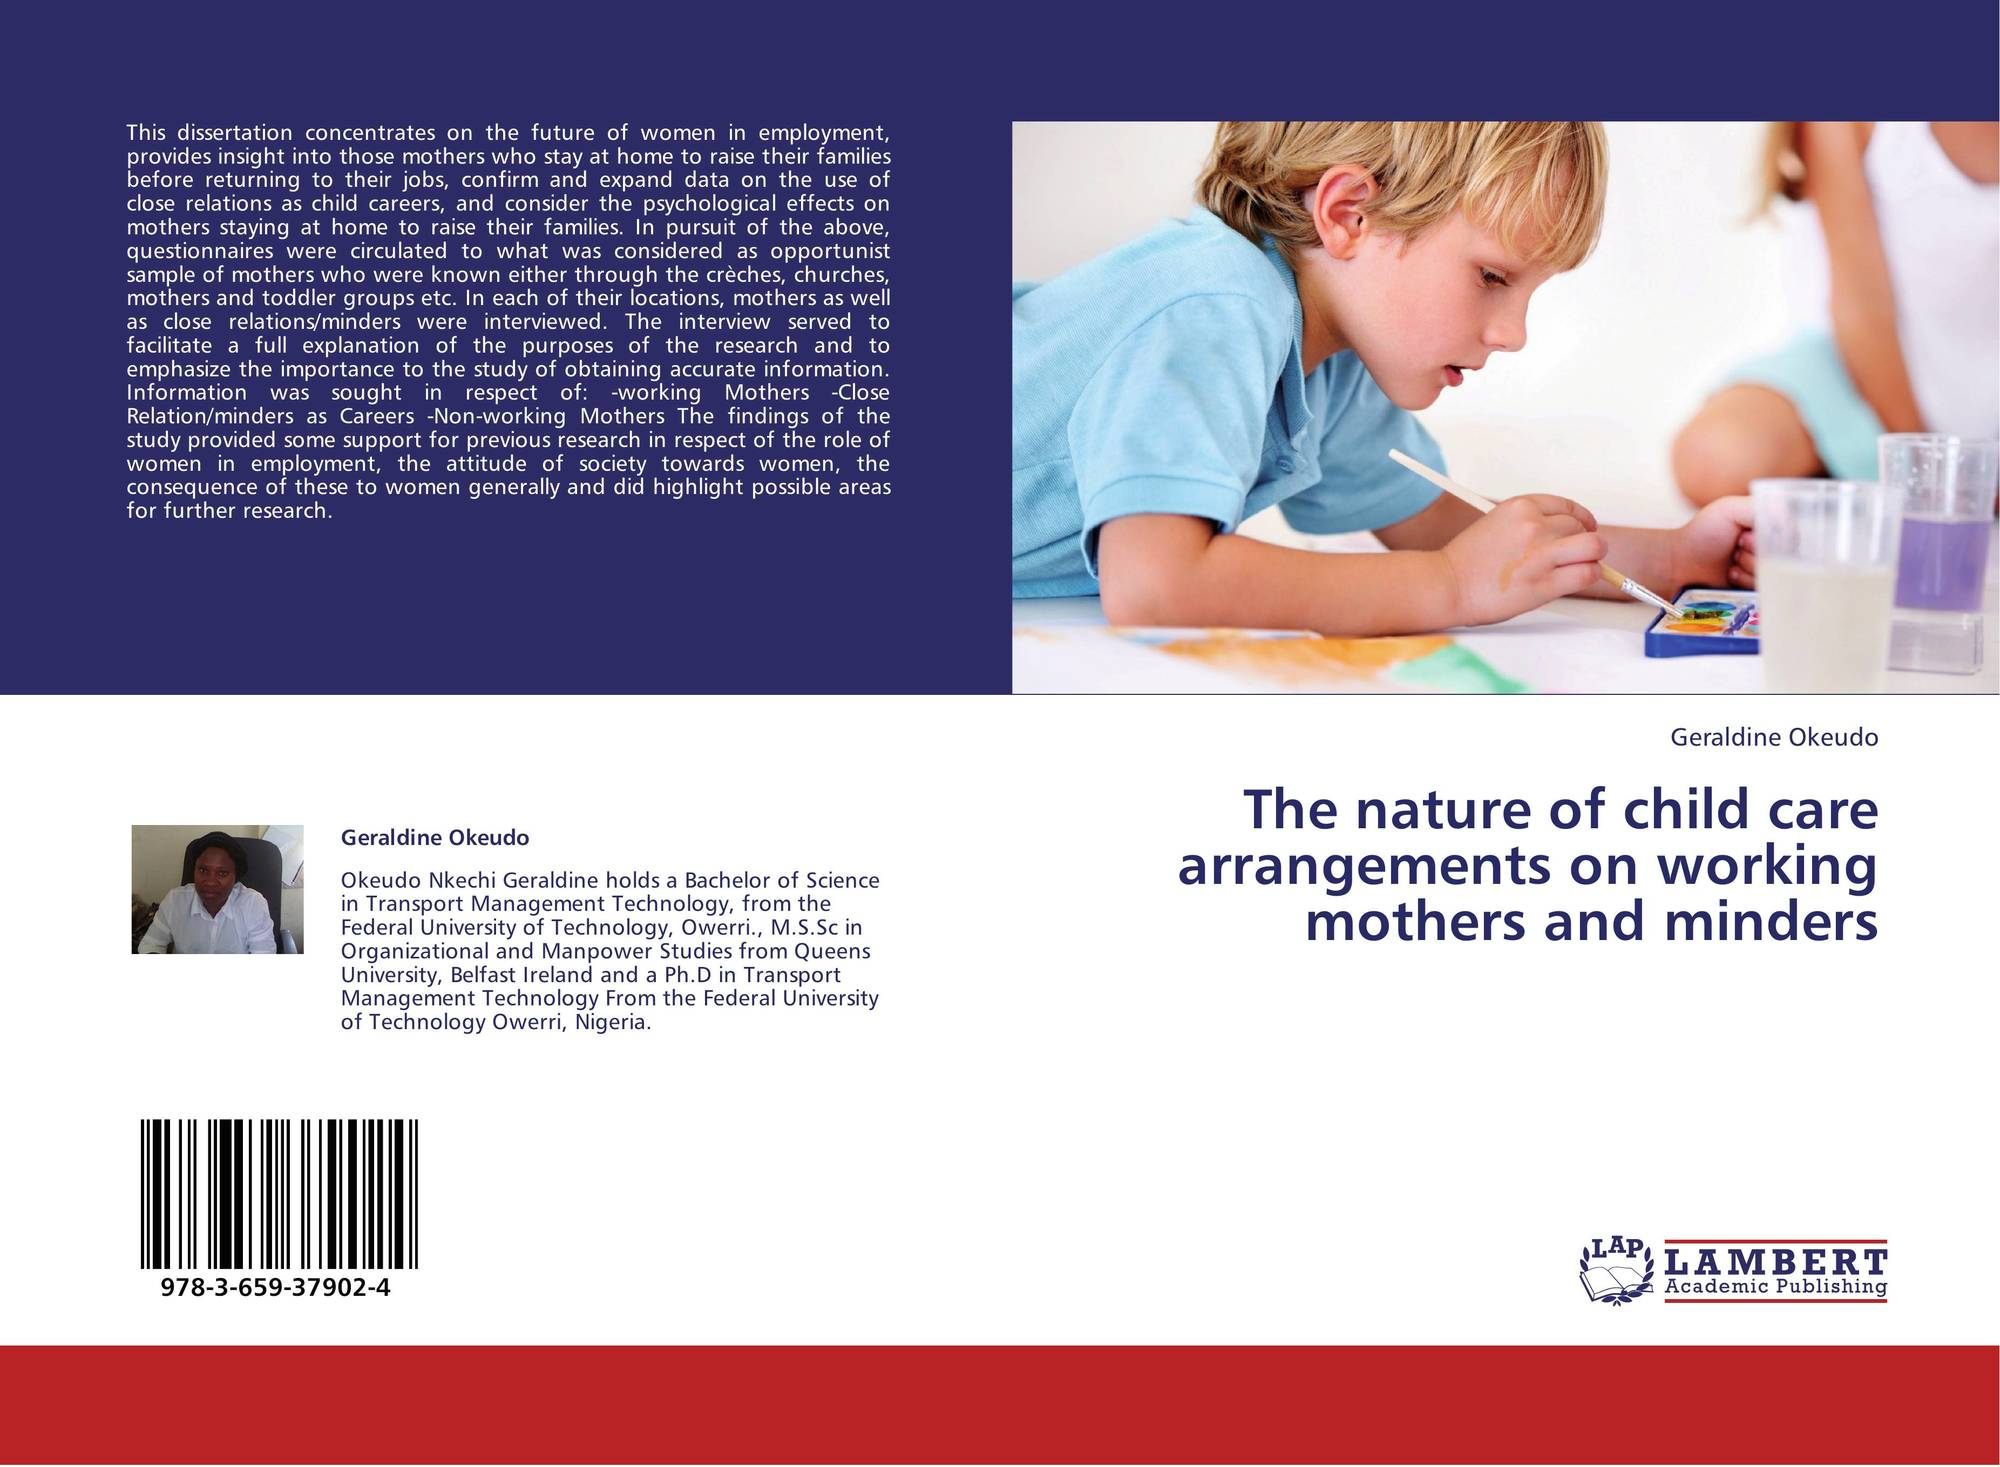 a description of the issue of childcare and working mothers Health issues health issues health a role model for her child in most families with working mothers may feel about working having quality child care and a.